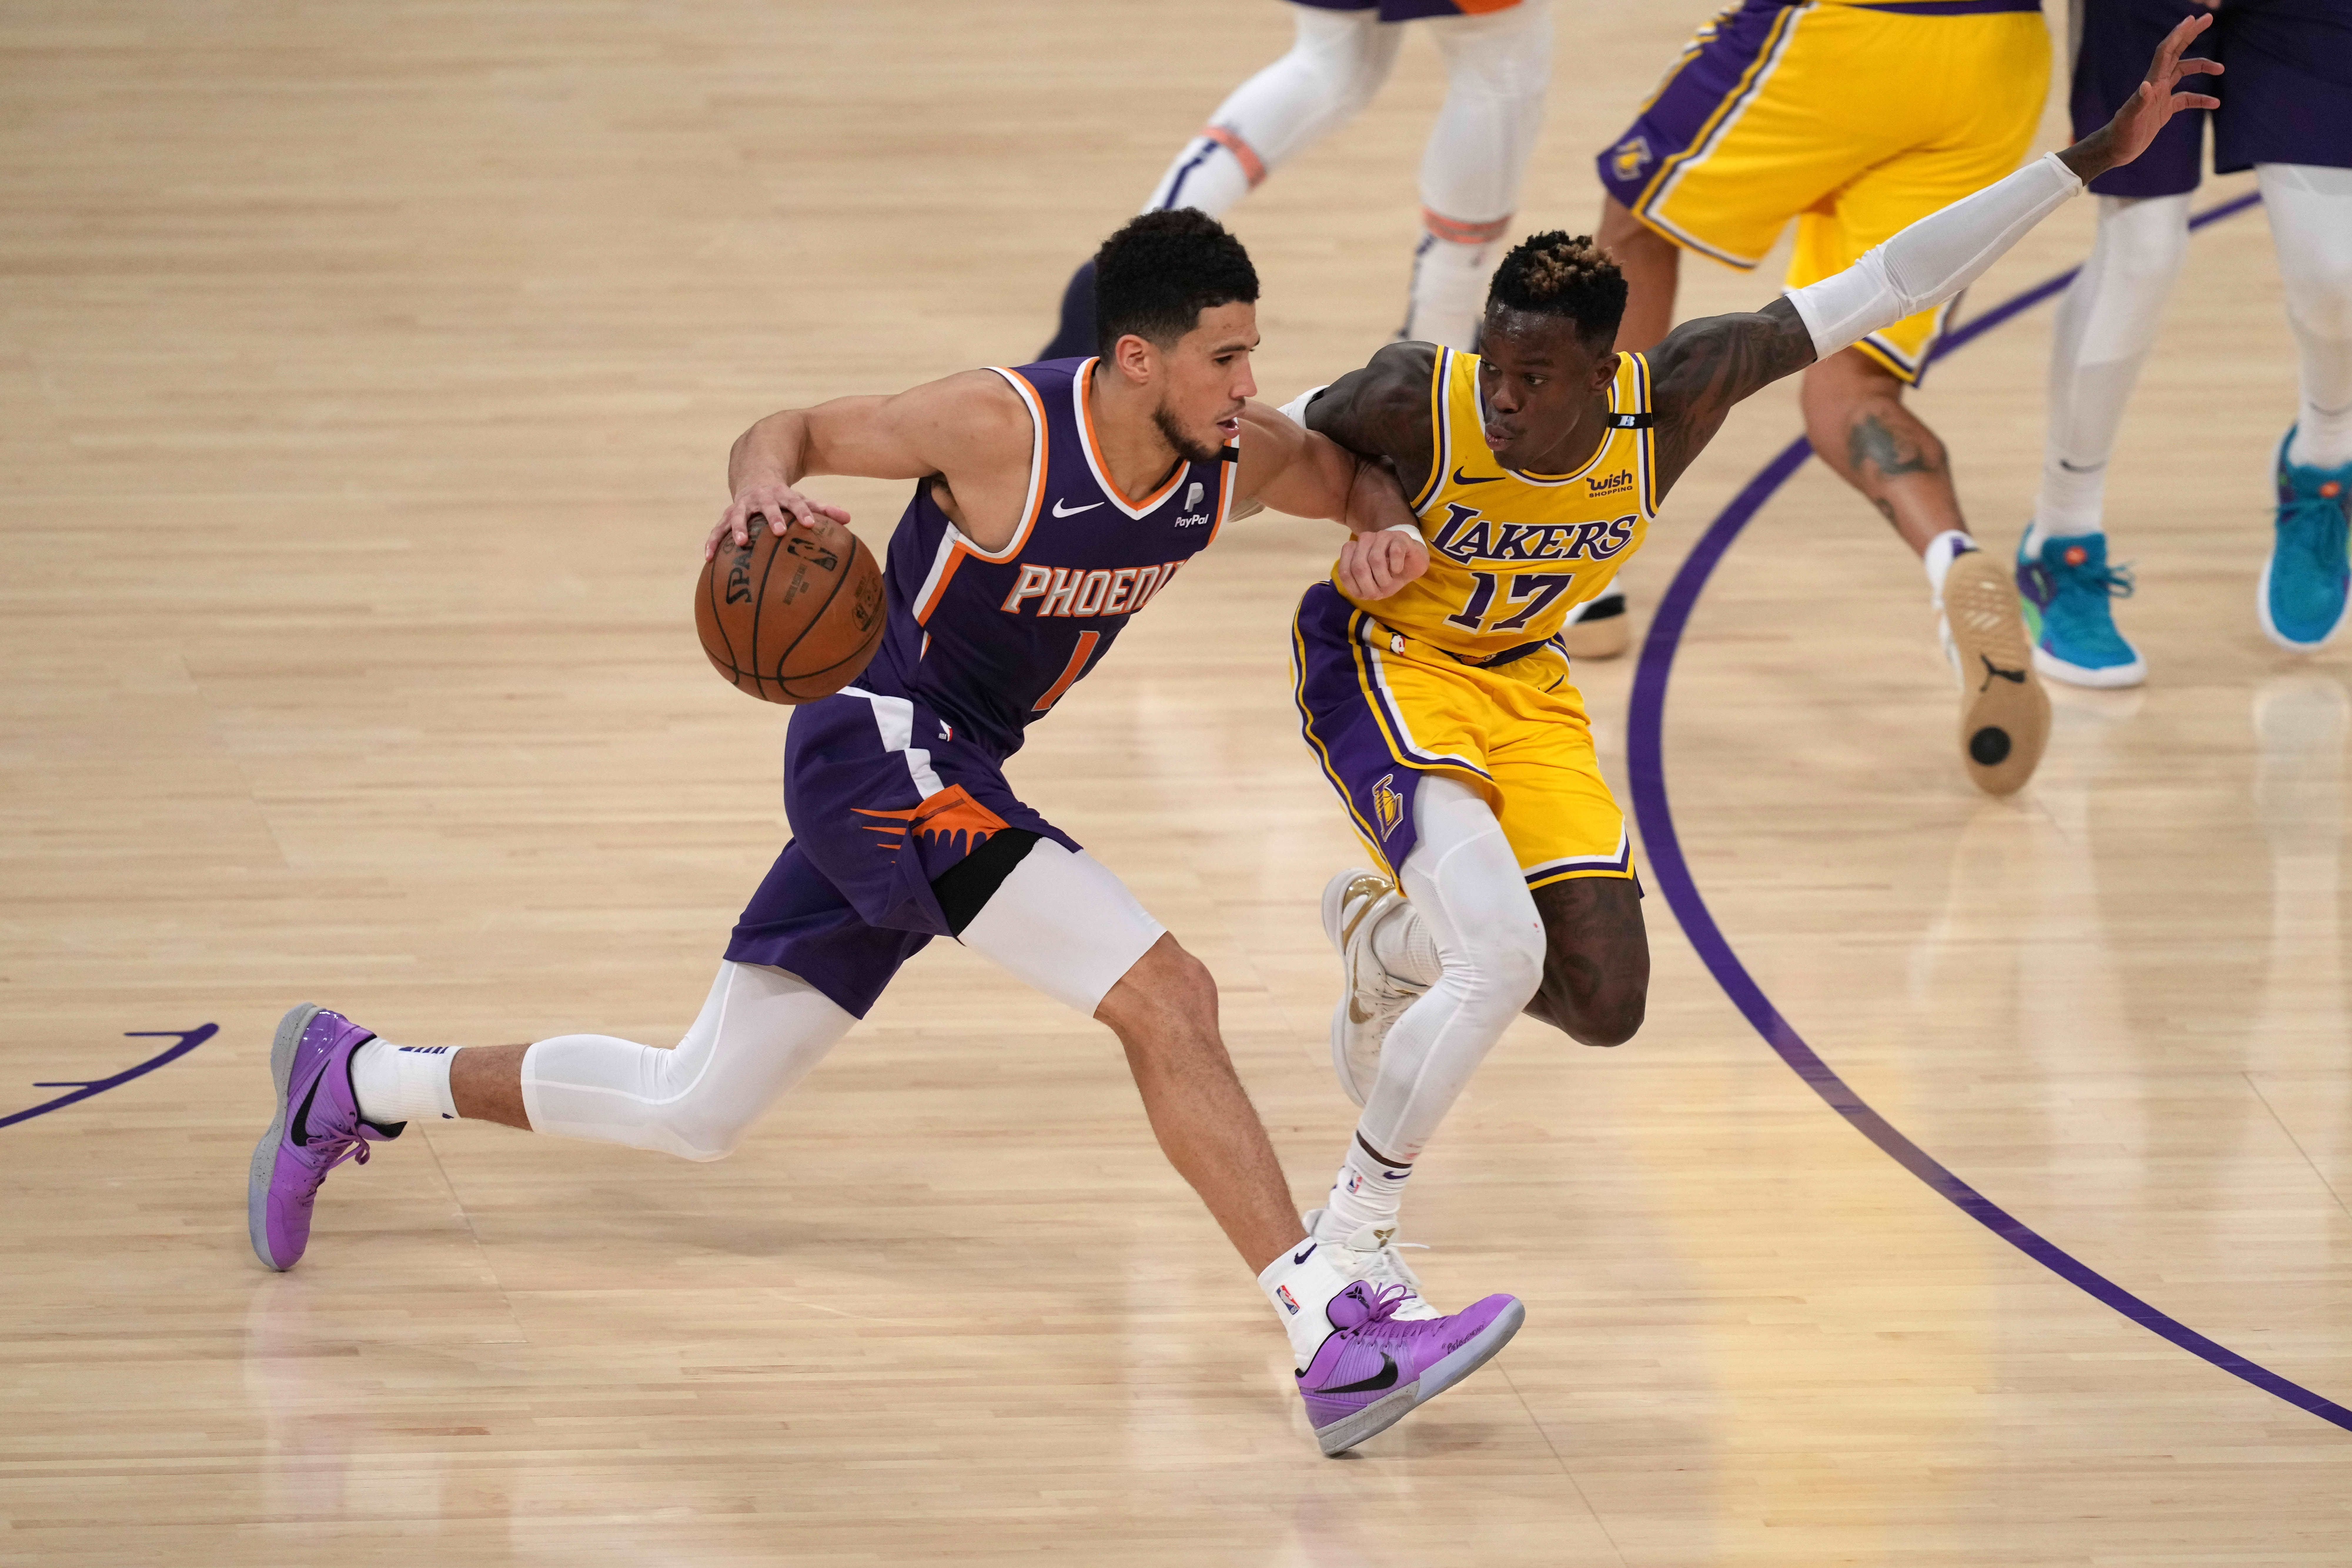 Lakers eliminated by upstart Suns in first round of NBA playoffs